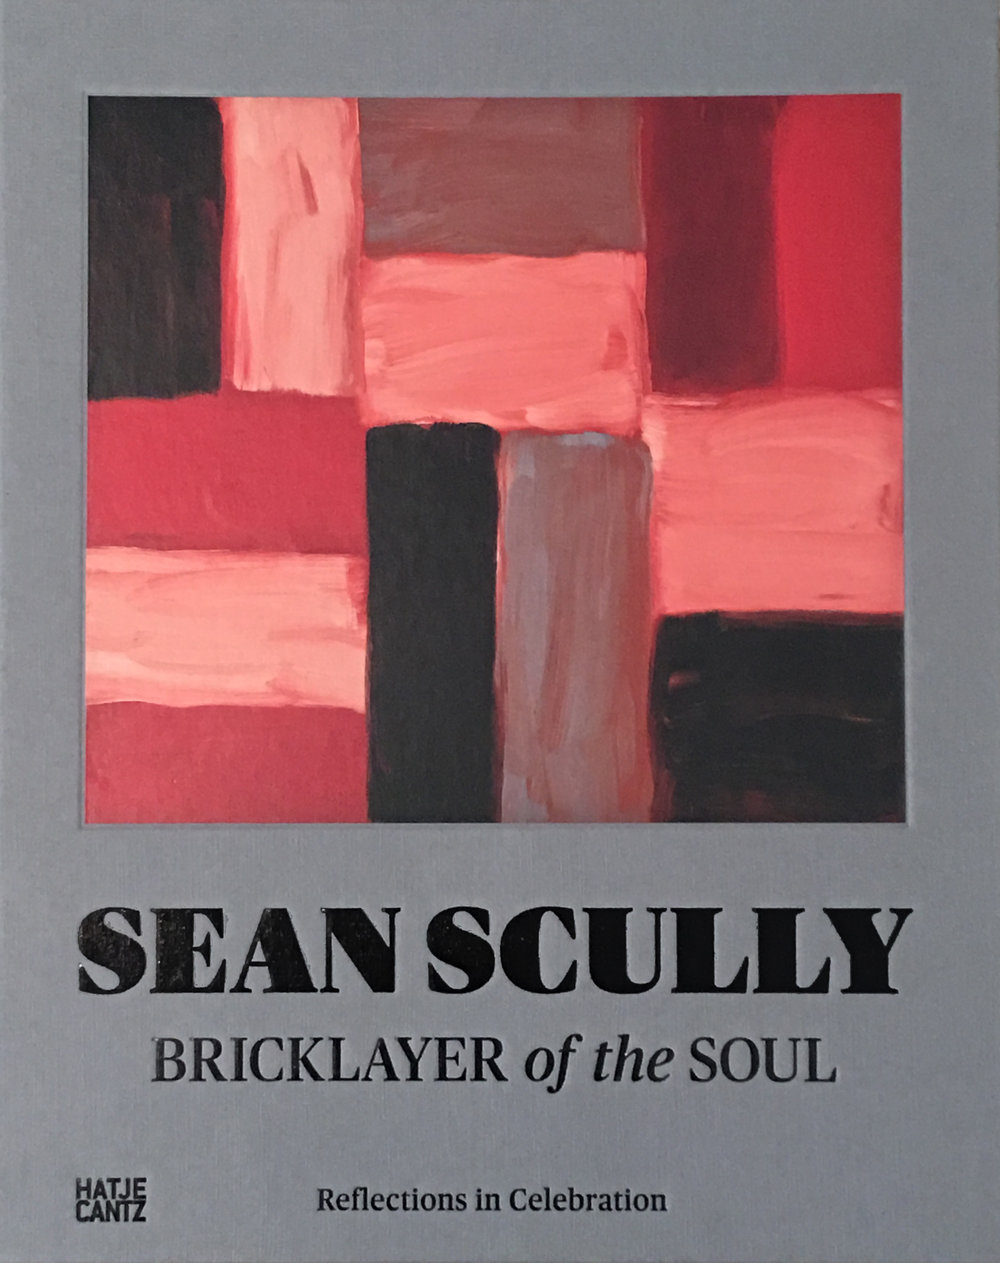 Findlay, Michael. (2015) 'Memoire', Sean Scully: Bricklayer of the Soul, ed. by Kelly Grovier, Germany: Hatje Cantz Verlag, p. 45-47.